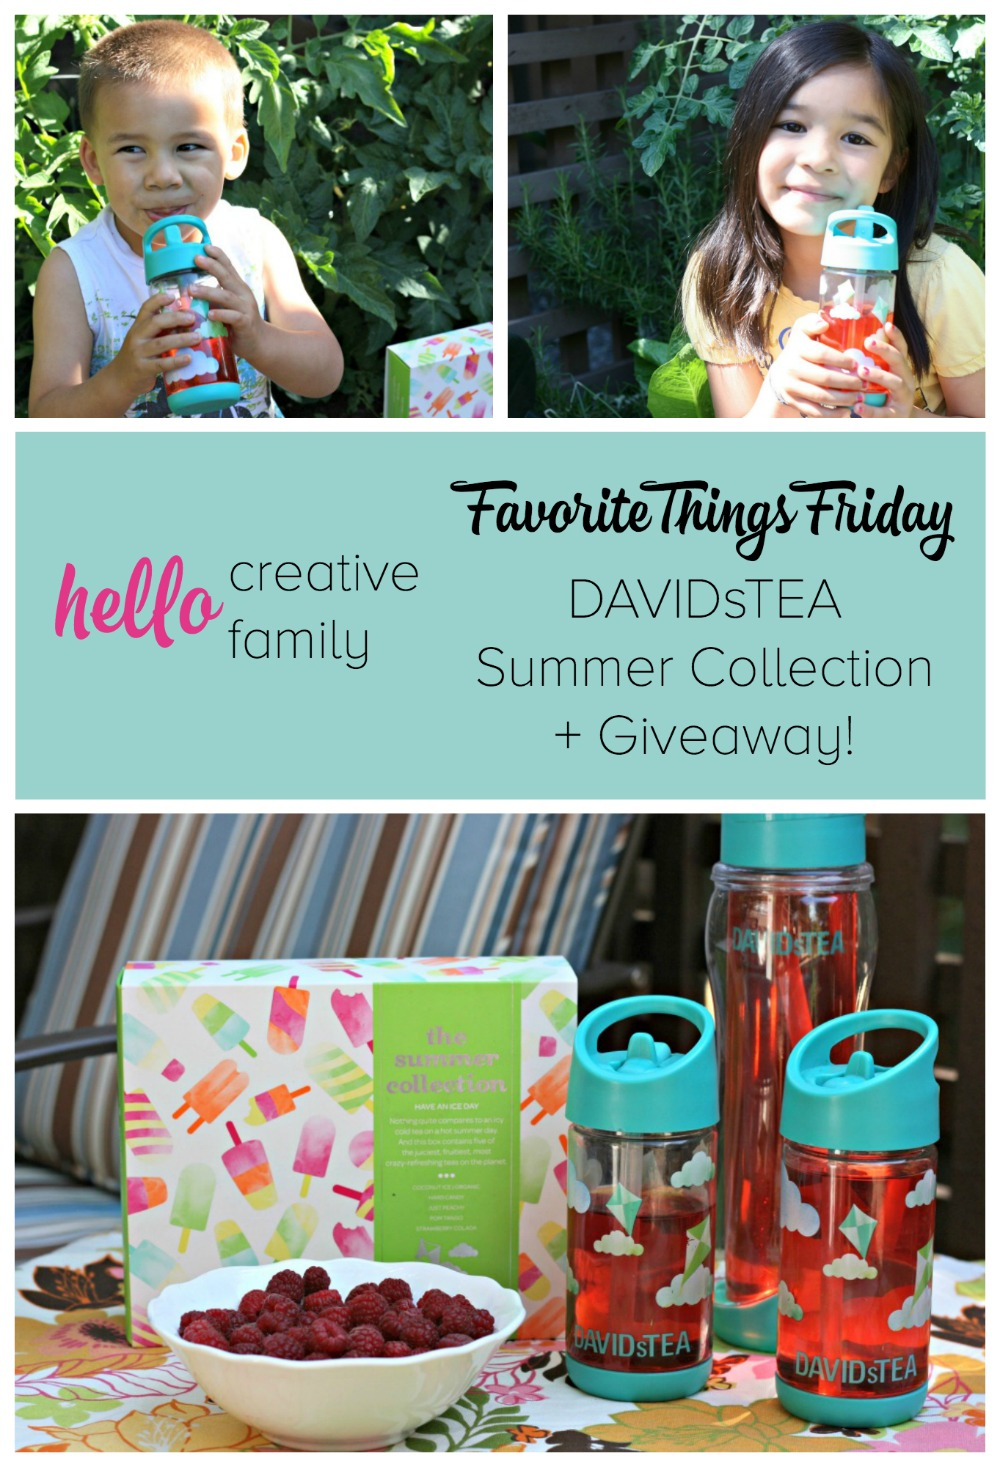 Hello Creative Family Favorite Things Friday- DAVIDsTEA Summer Collection + Giveaway